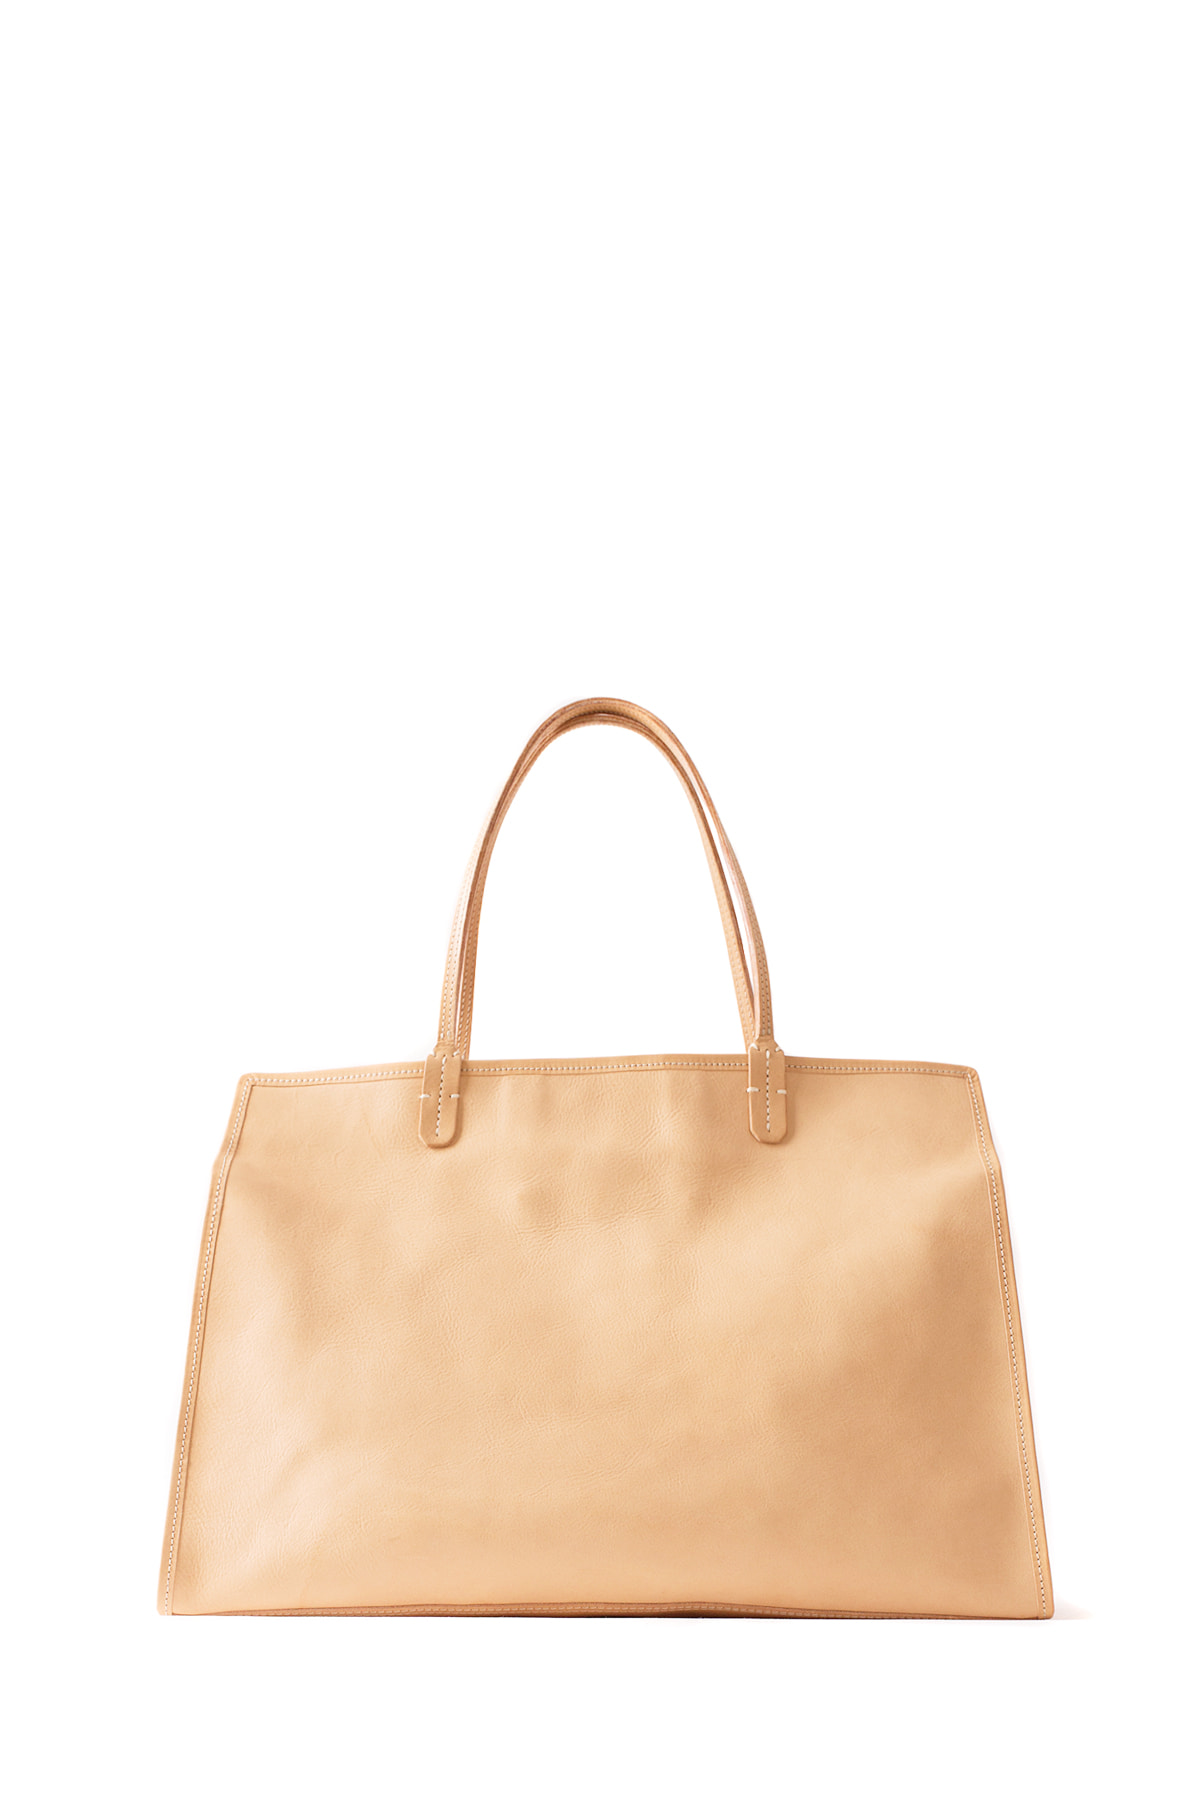 YSY : Daily Bag L (Natural)